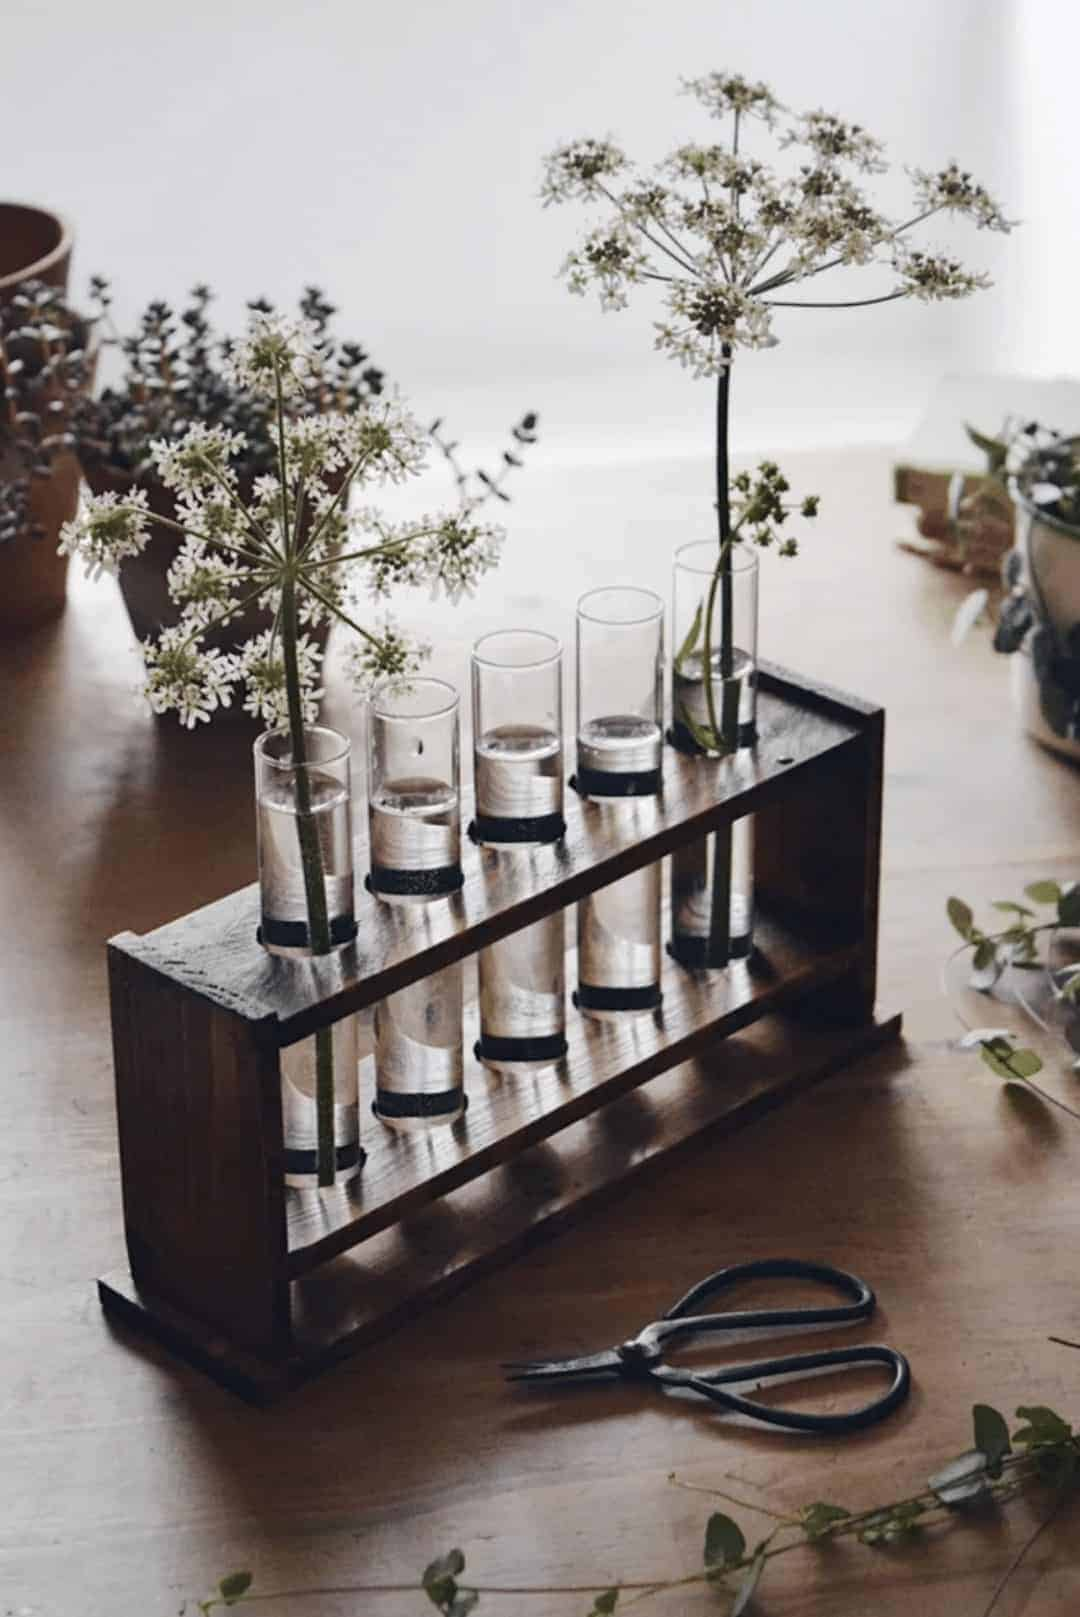 test tube rack by permillion